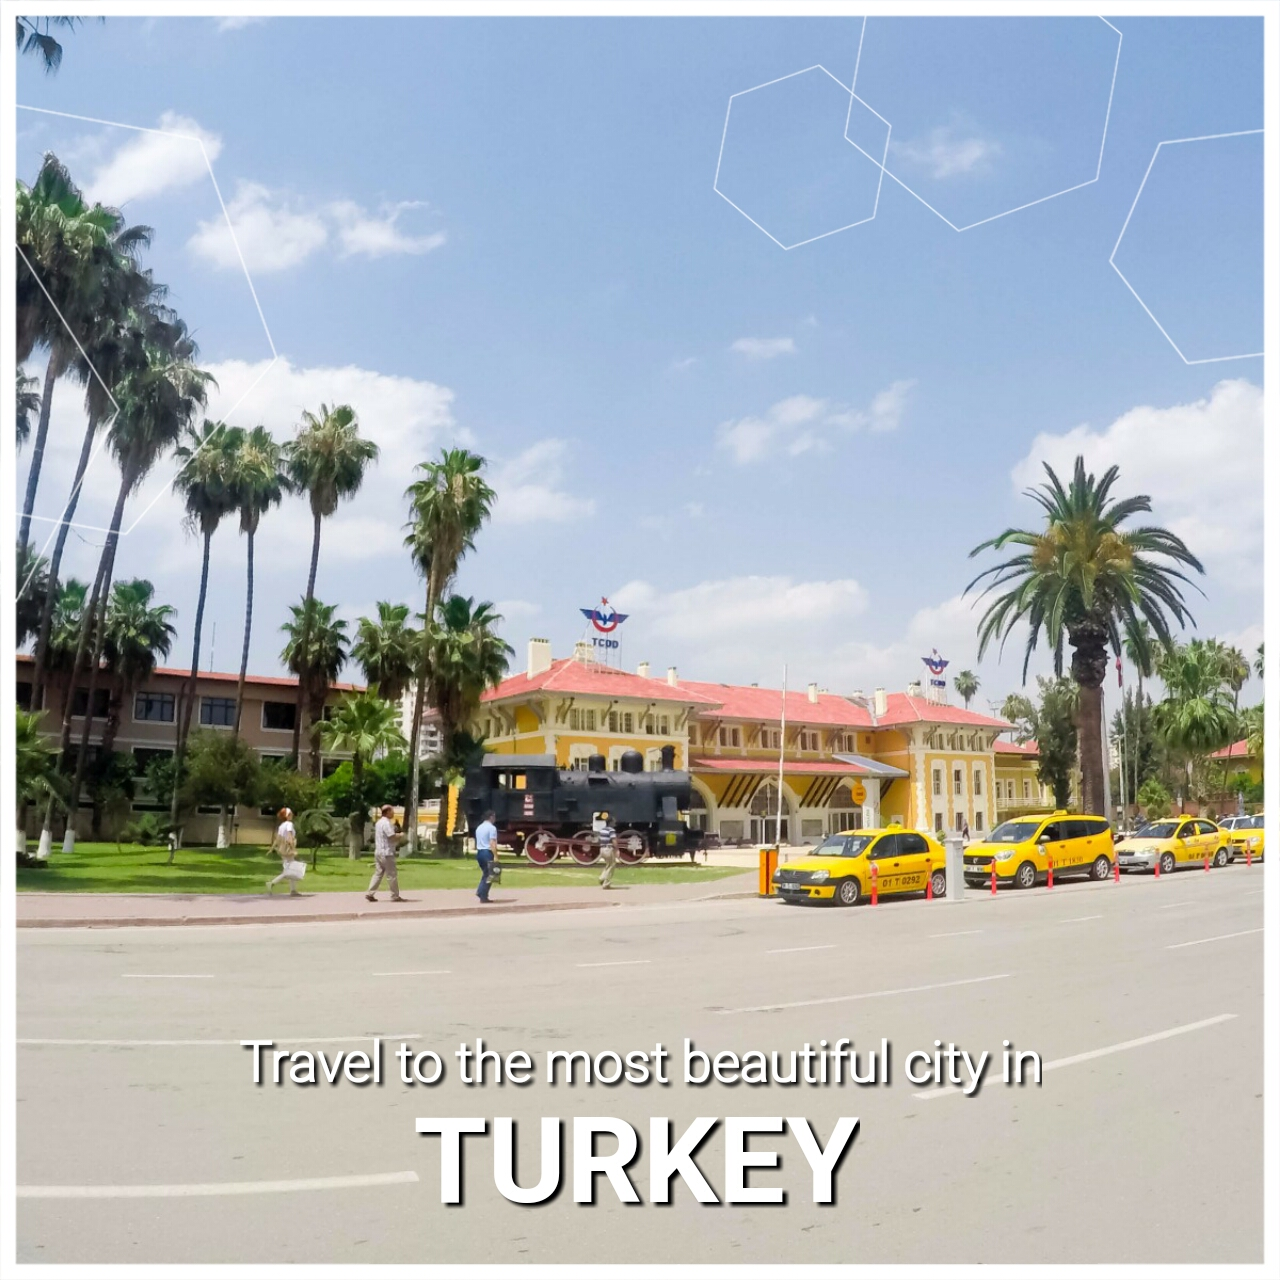 Travel to the most beautiful city in Turkey